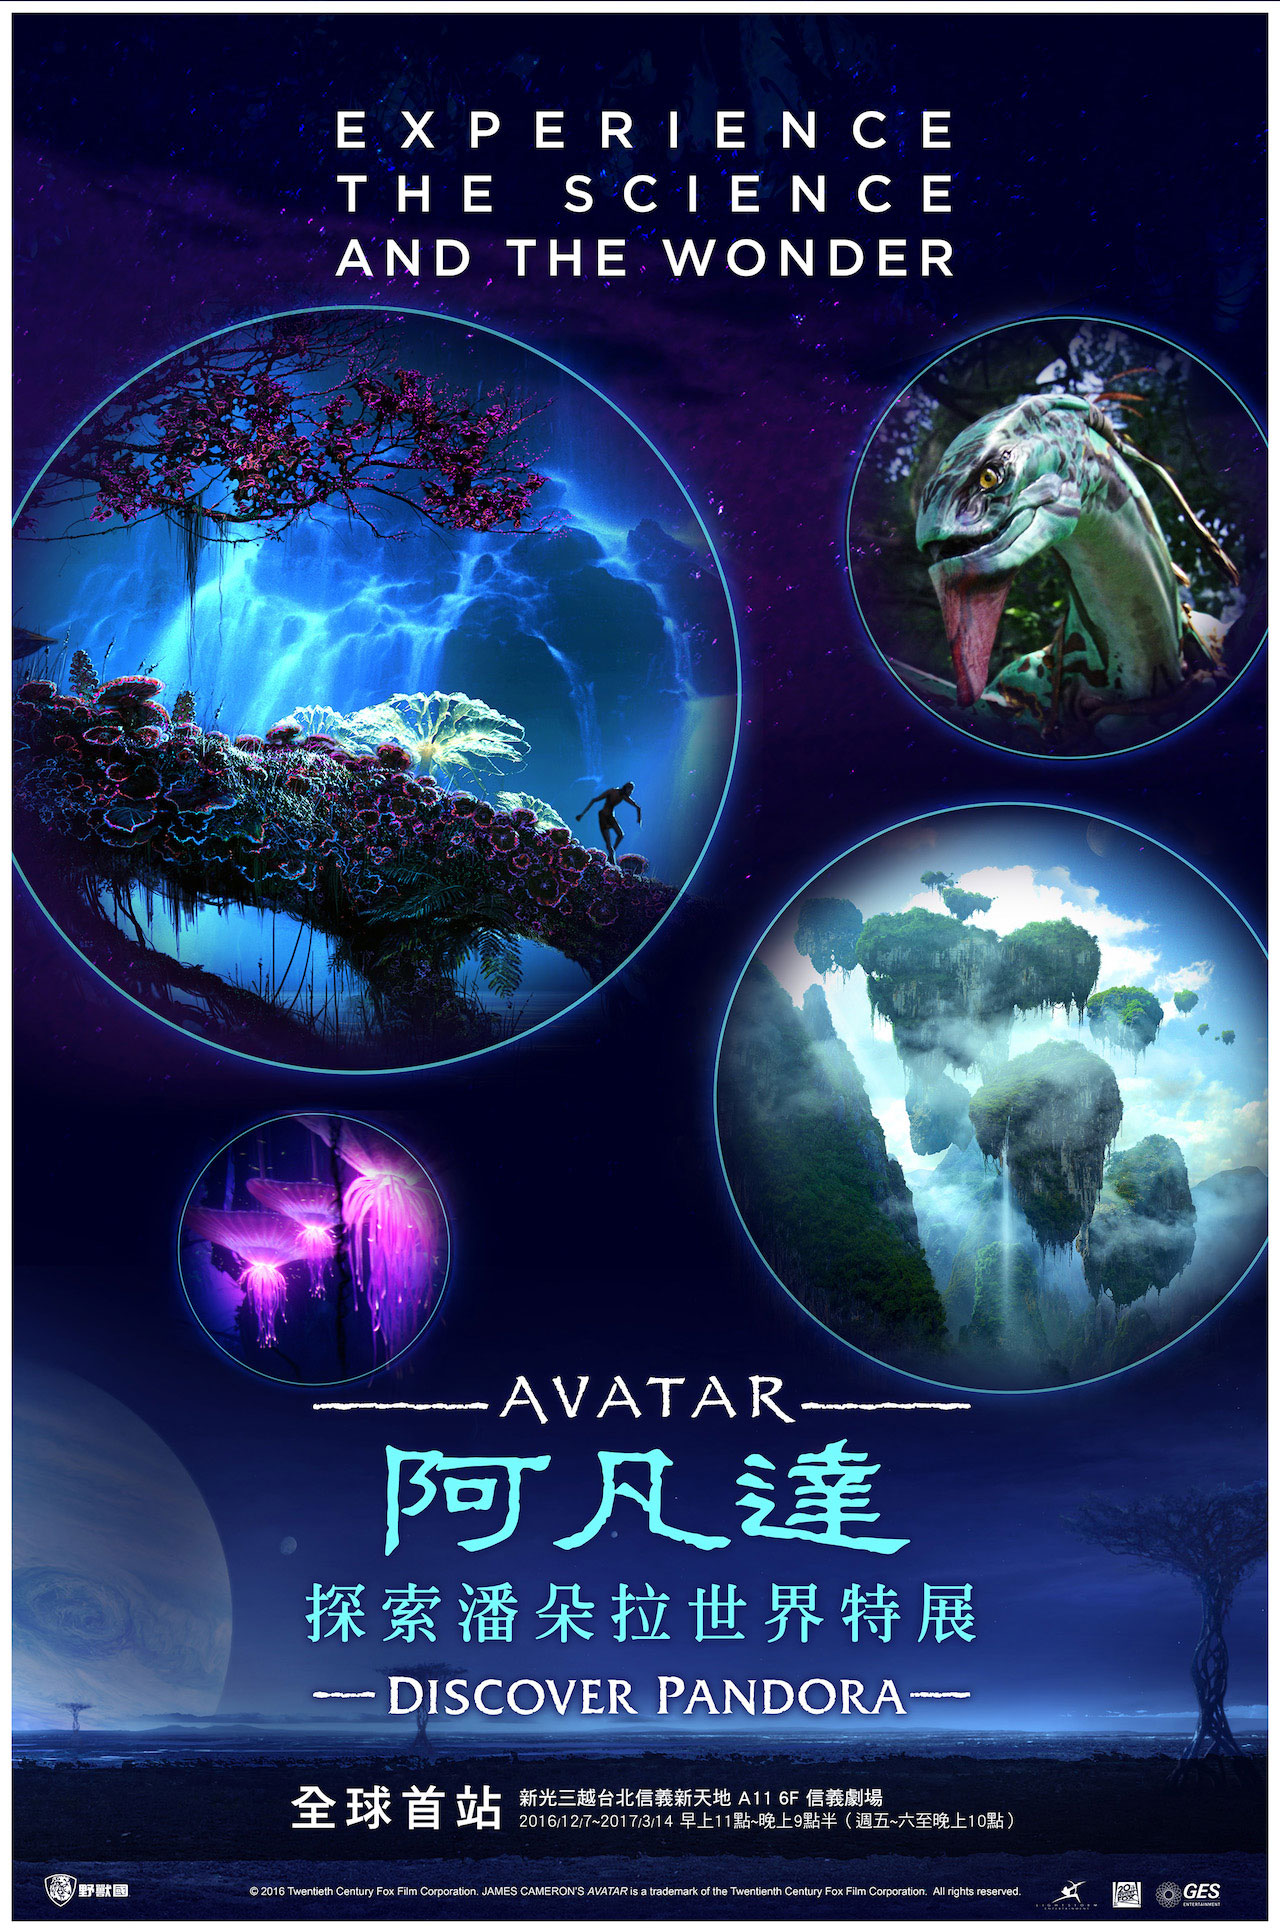 discover pandora avatar exhibit to open in taiwan avatar discover pandora